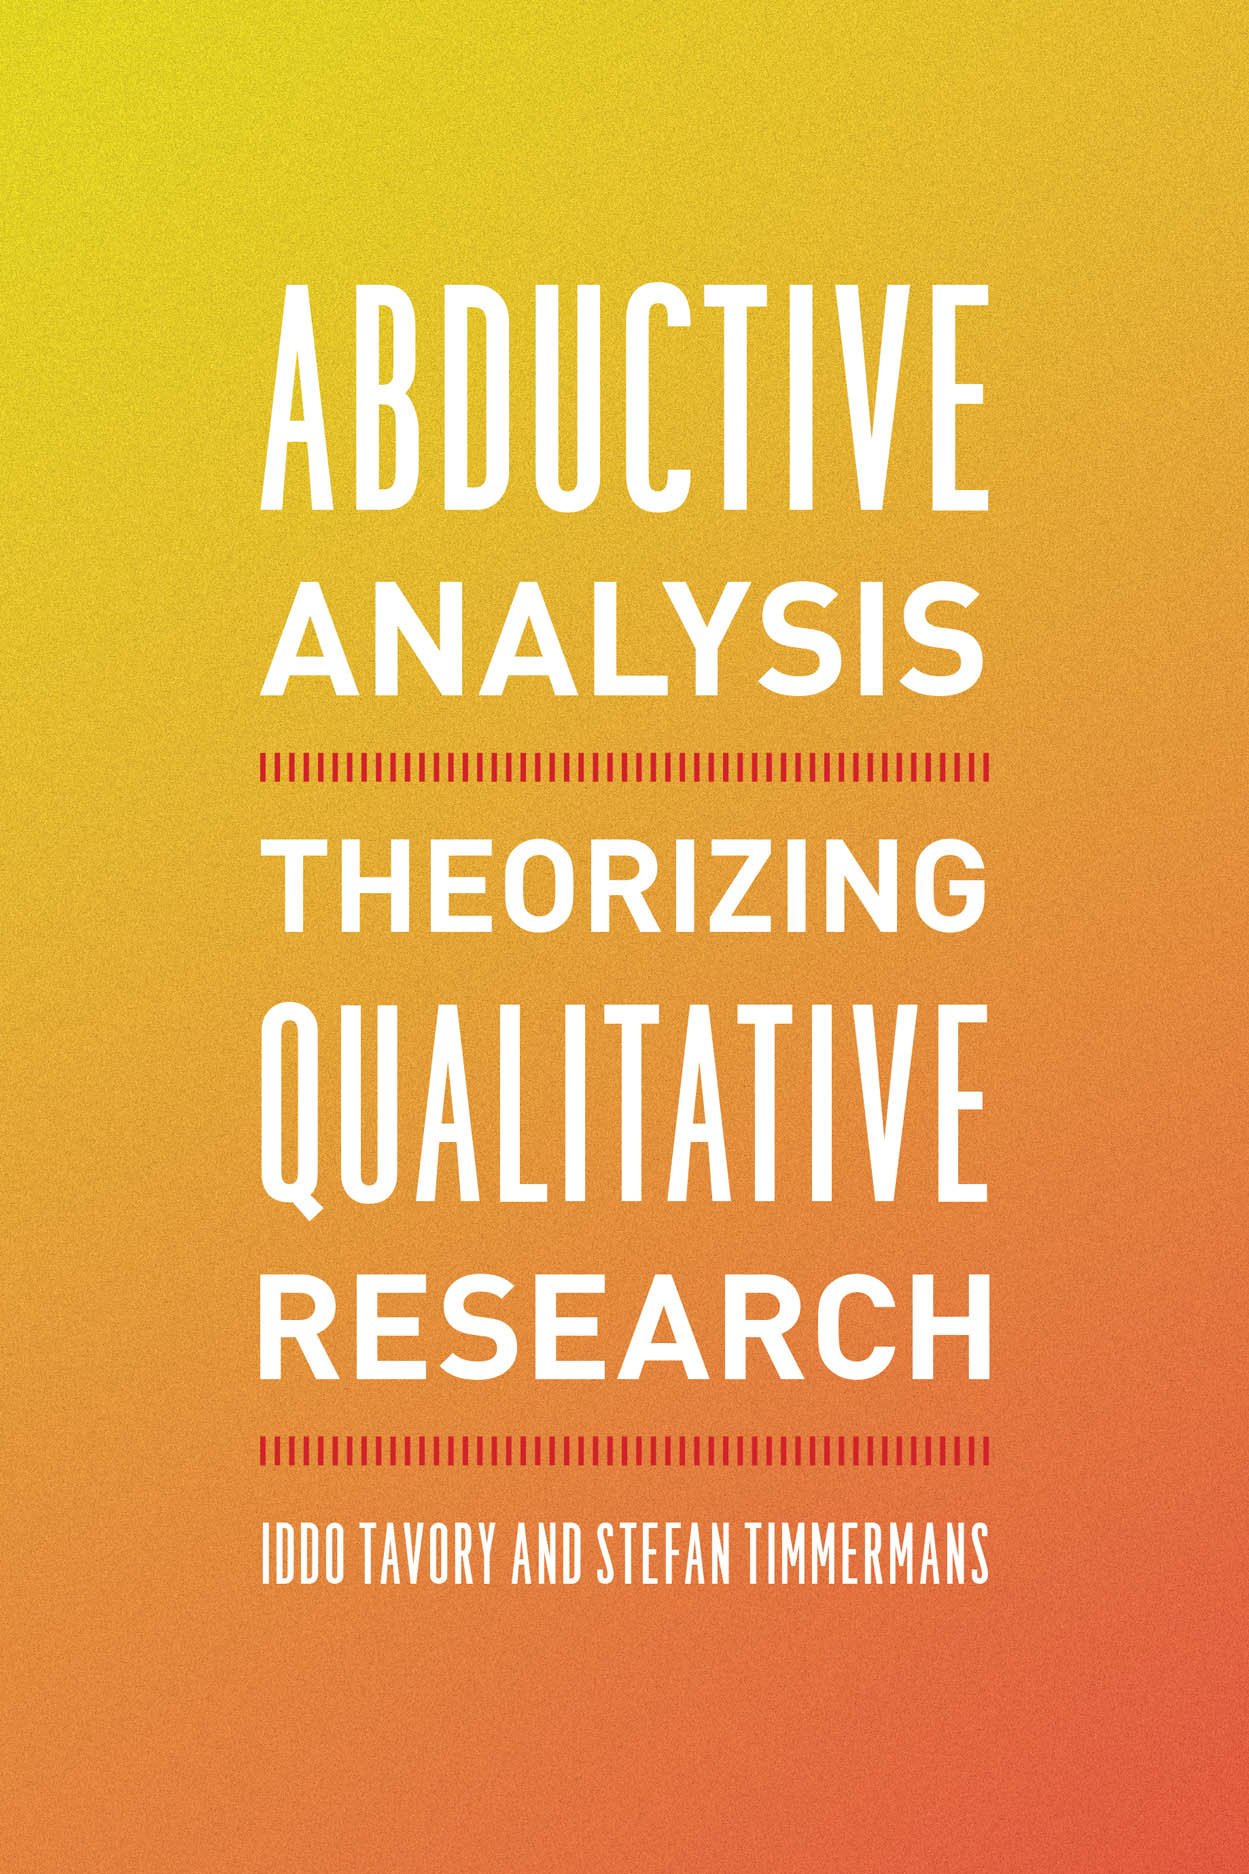 Abductive Analysis: Theorizing Qualitative Research